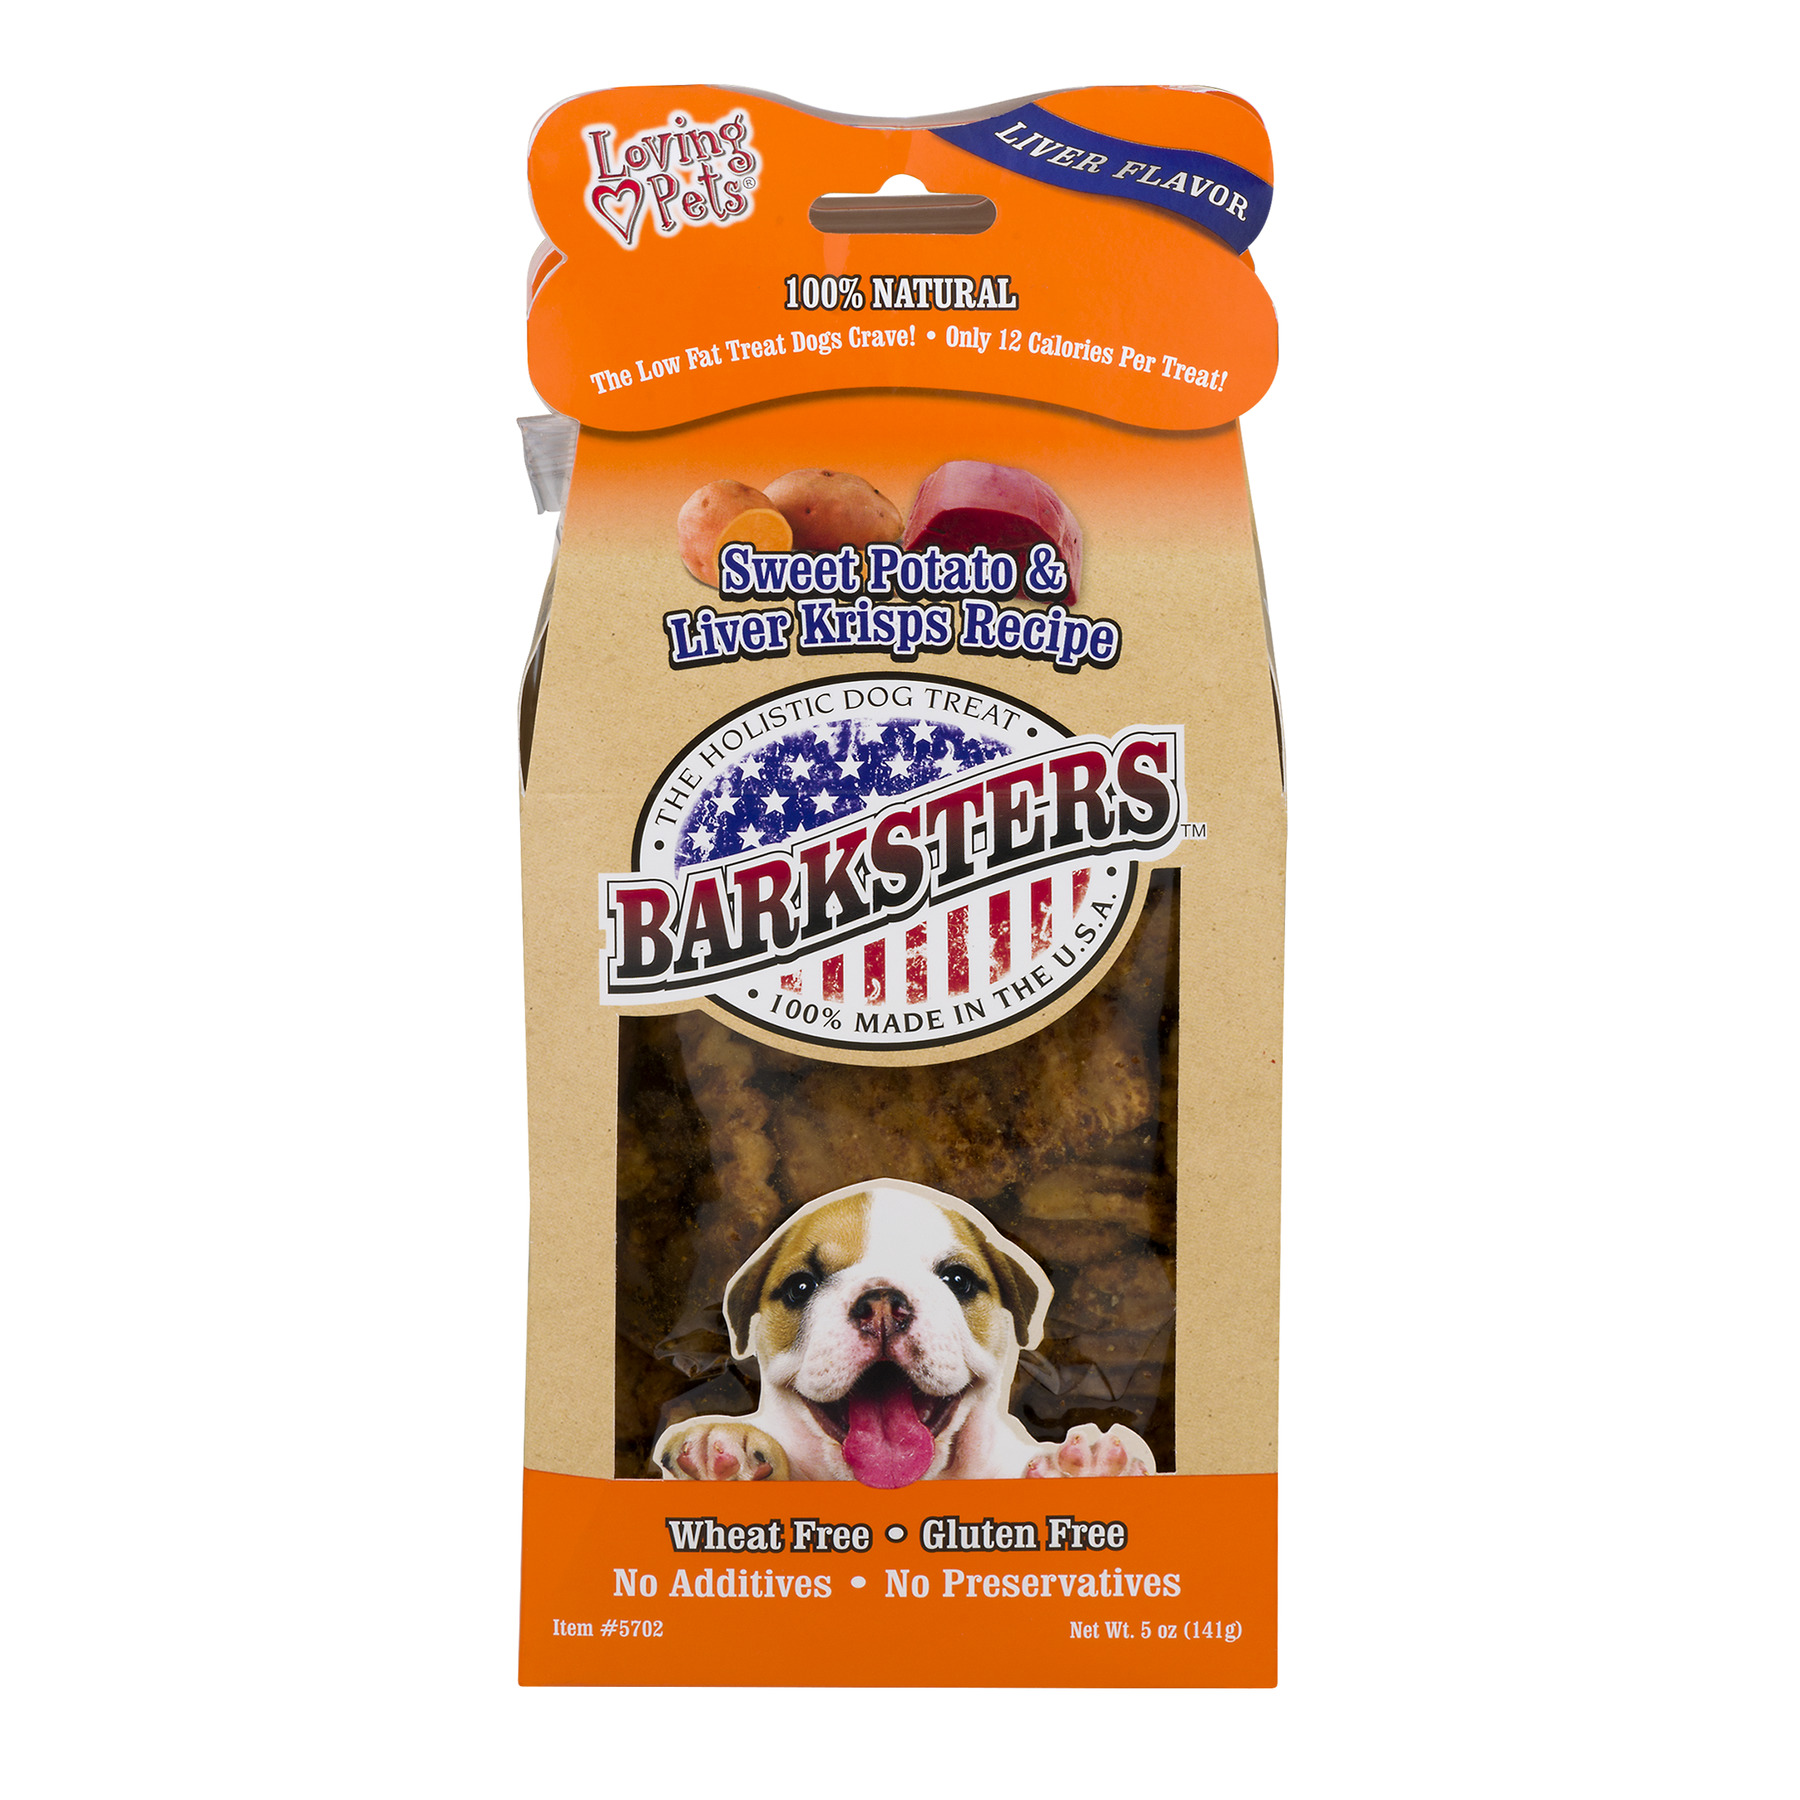 Barksters Sweet Potato & Liver Krisps, 5.0 OZ